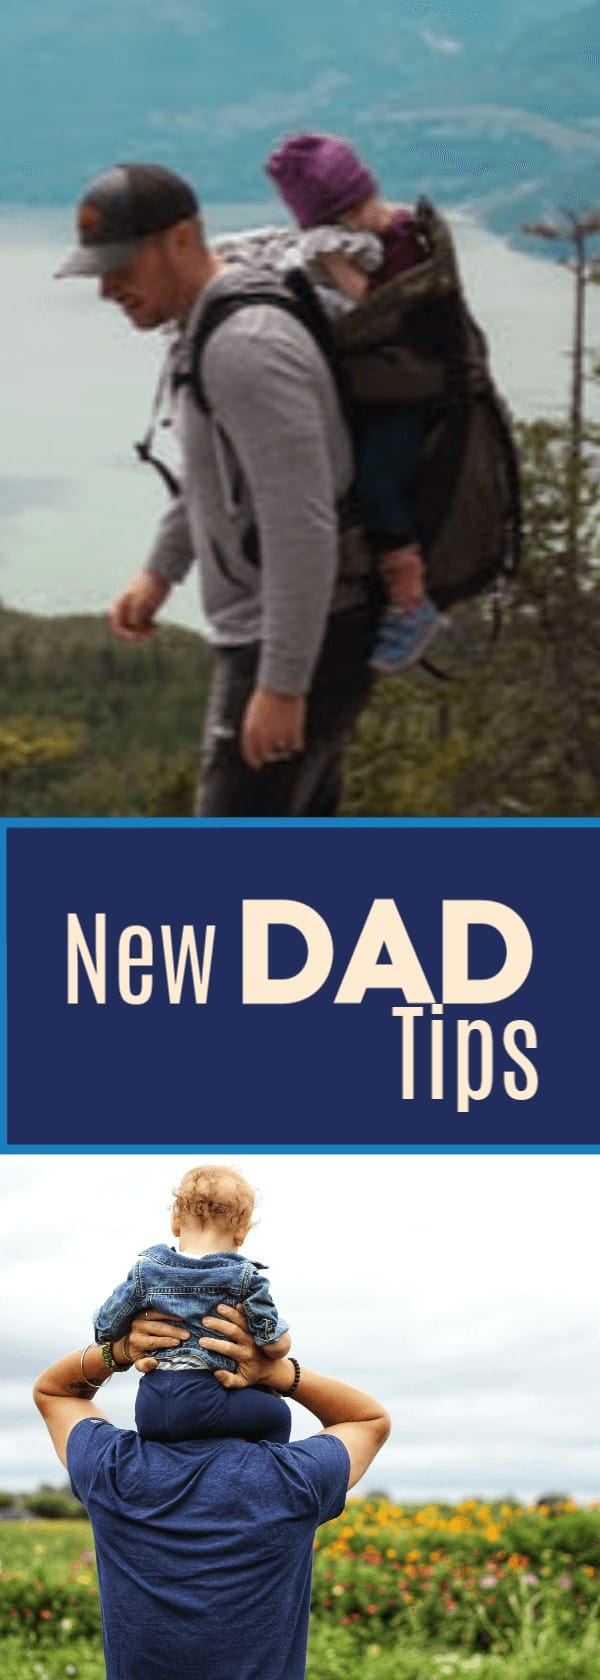 Advice for New Dads: 10 Ways for Dads to Bond with Baby